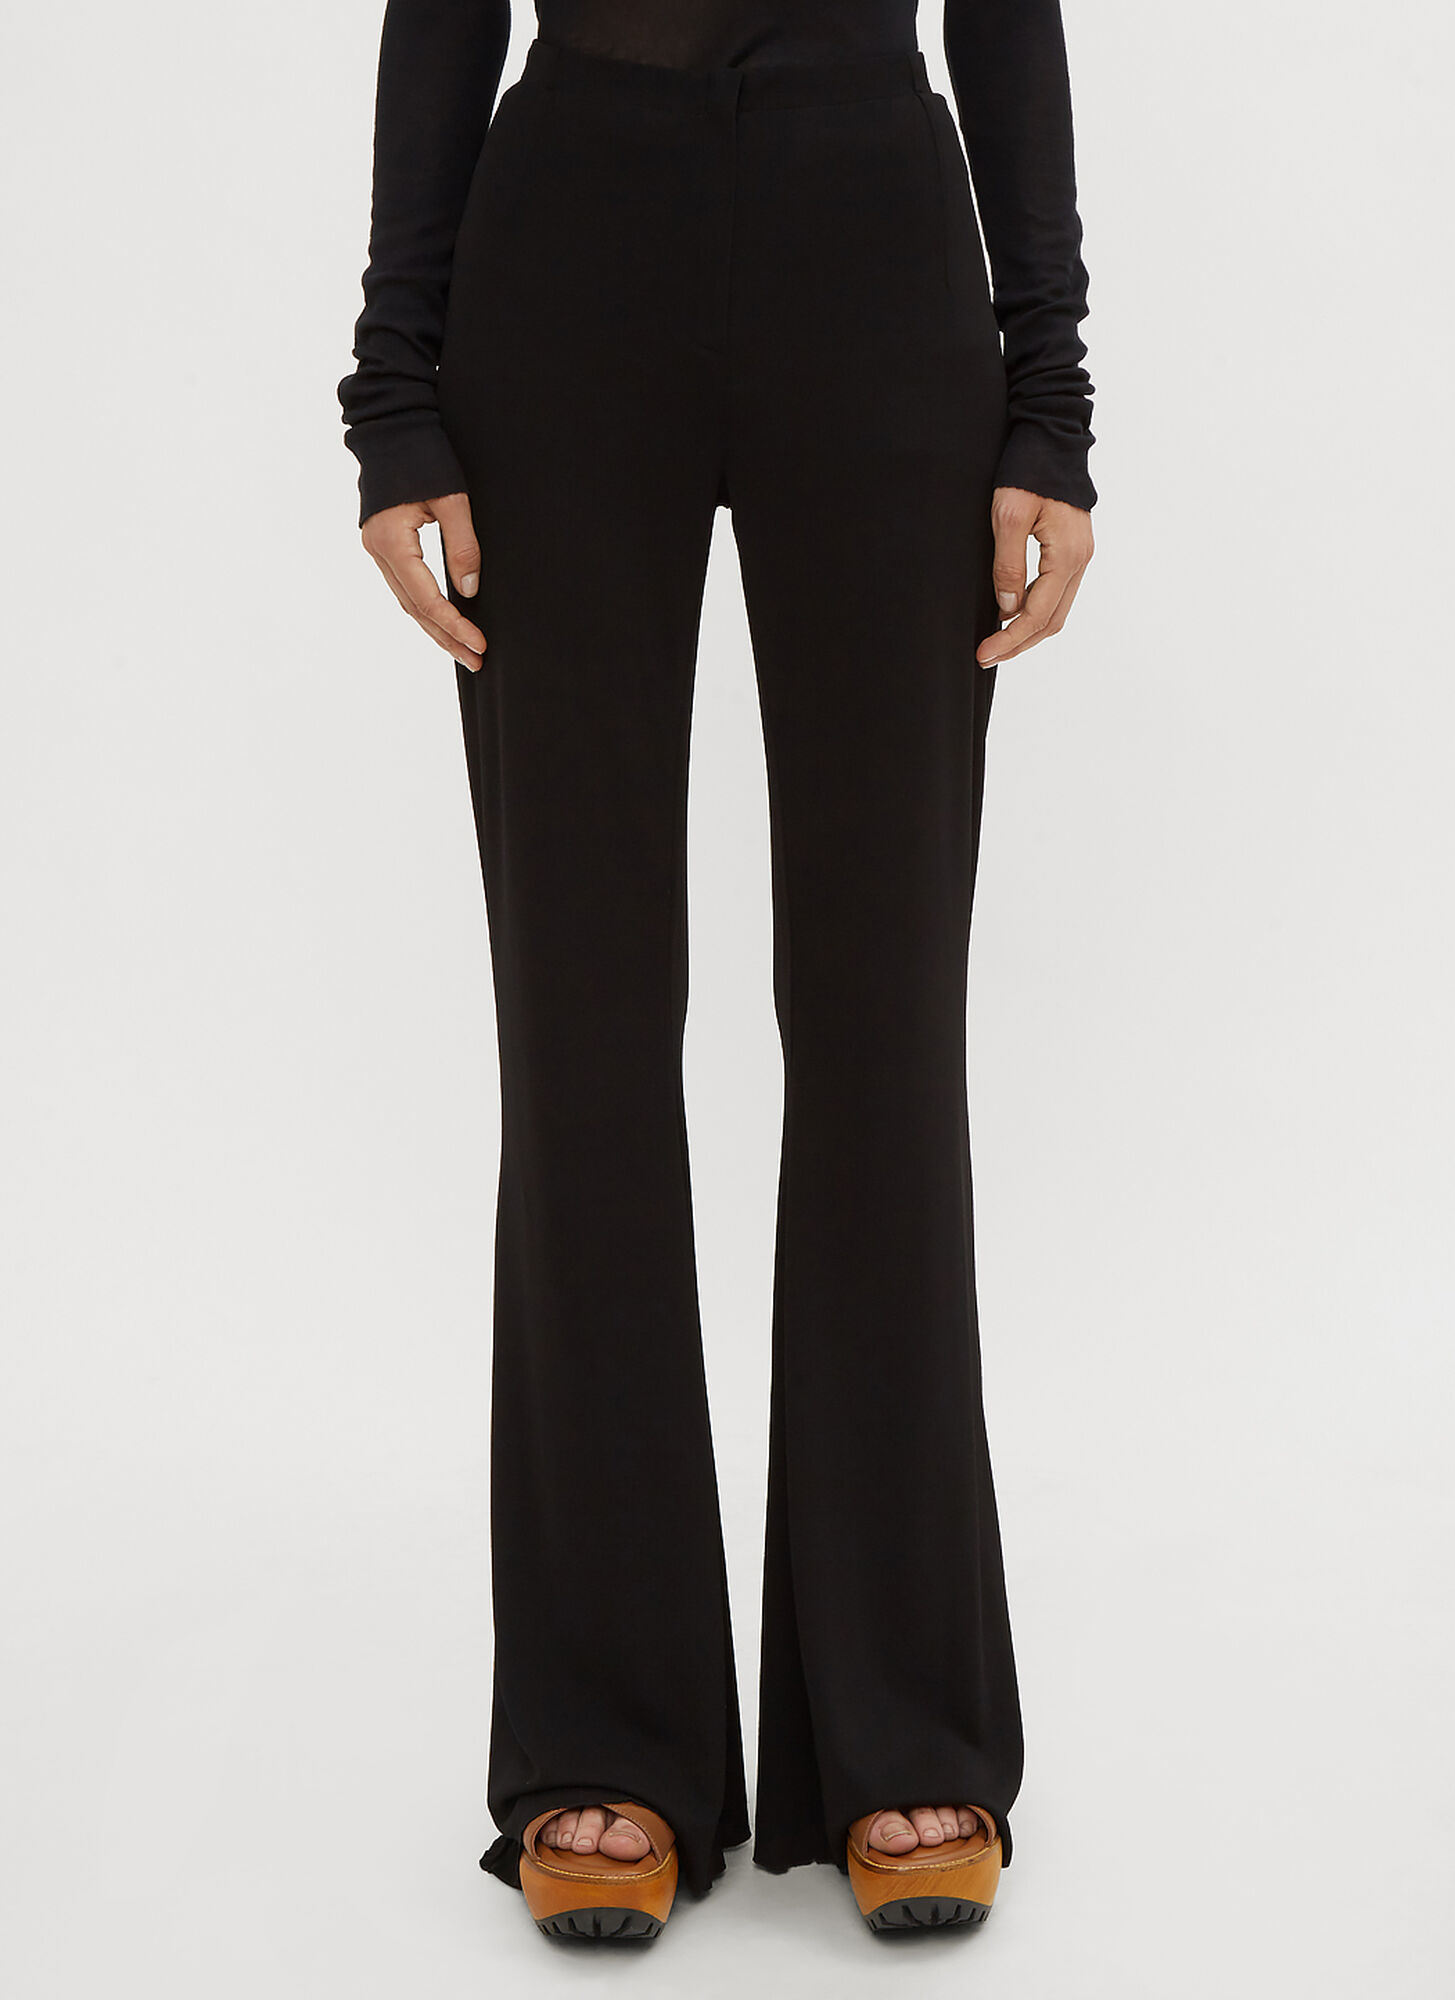 Photo of Marni Flared Jersey Pants in Black - Marni Pants